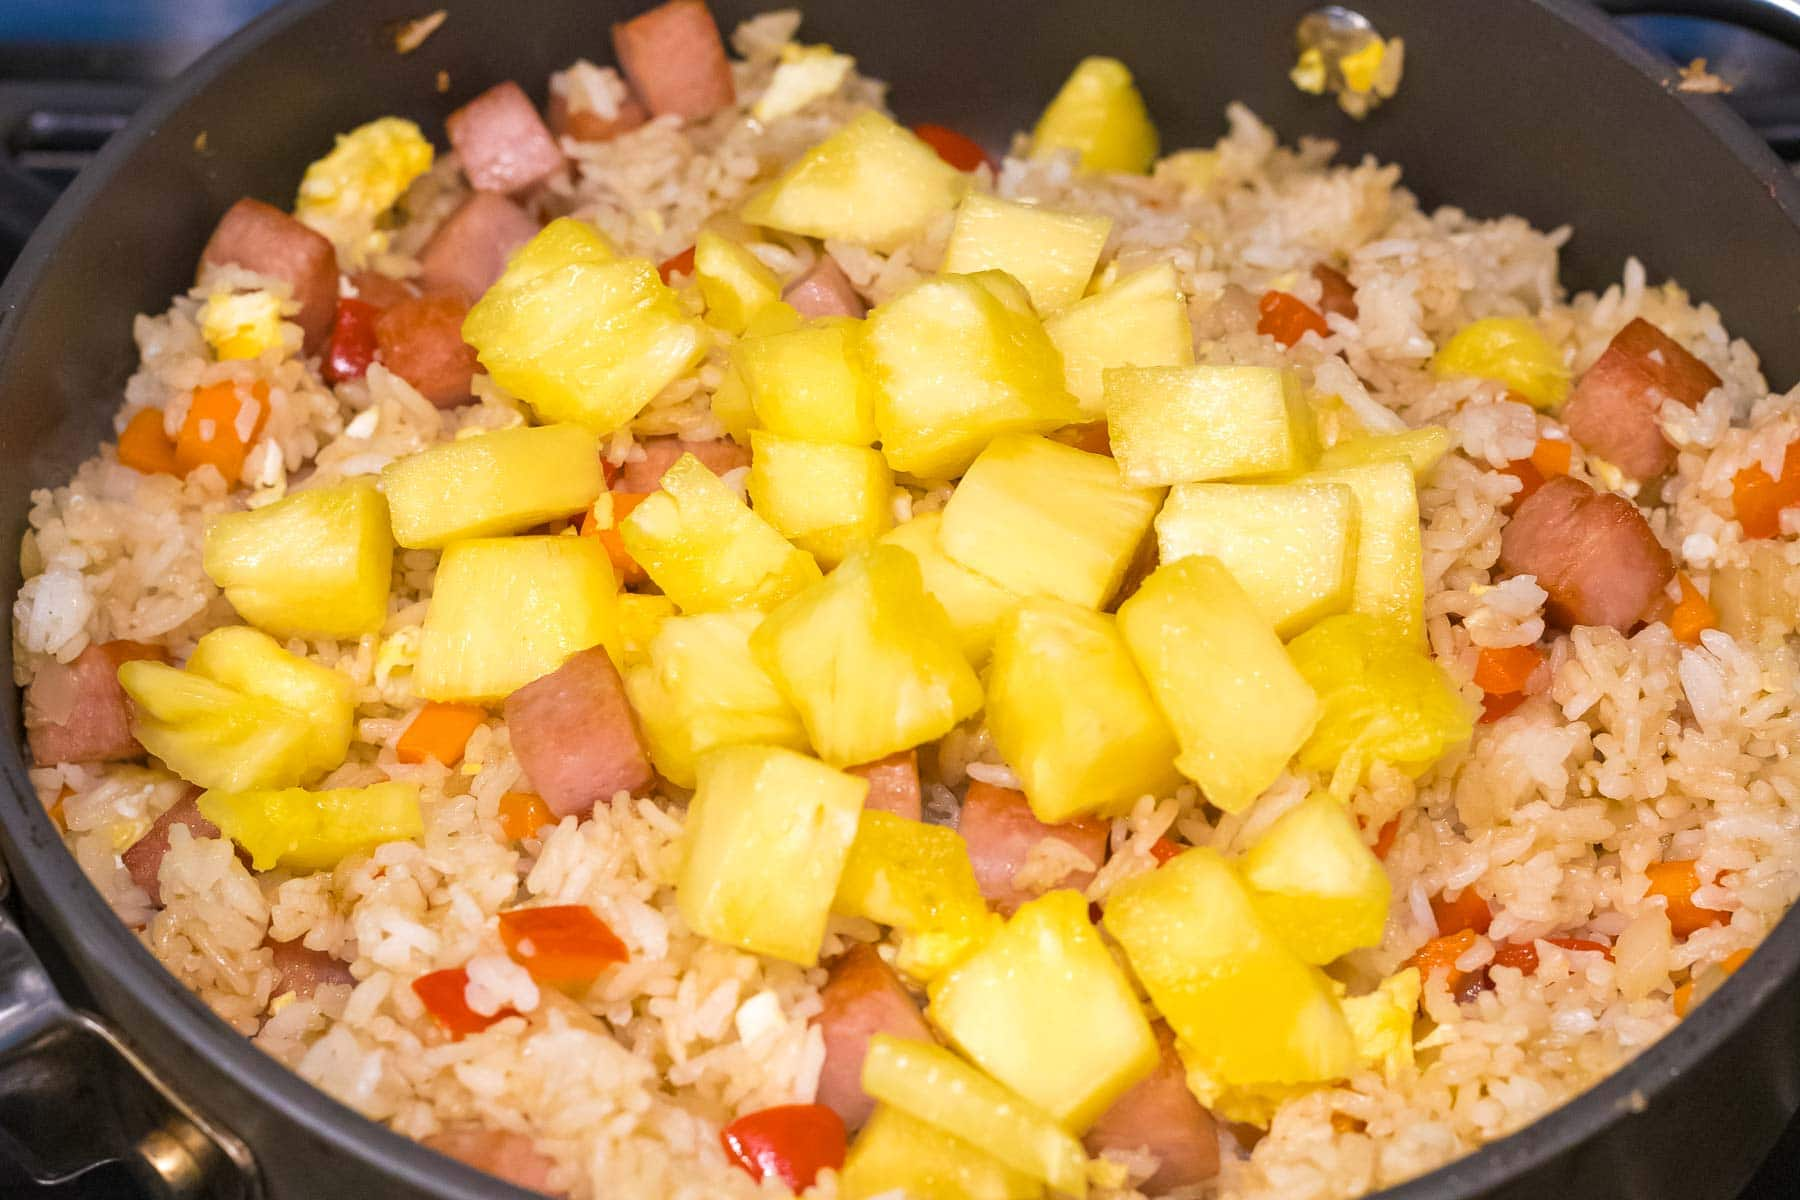 fried rice with spam and pineapple chunks in a pan